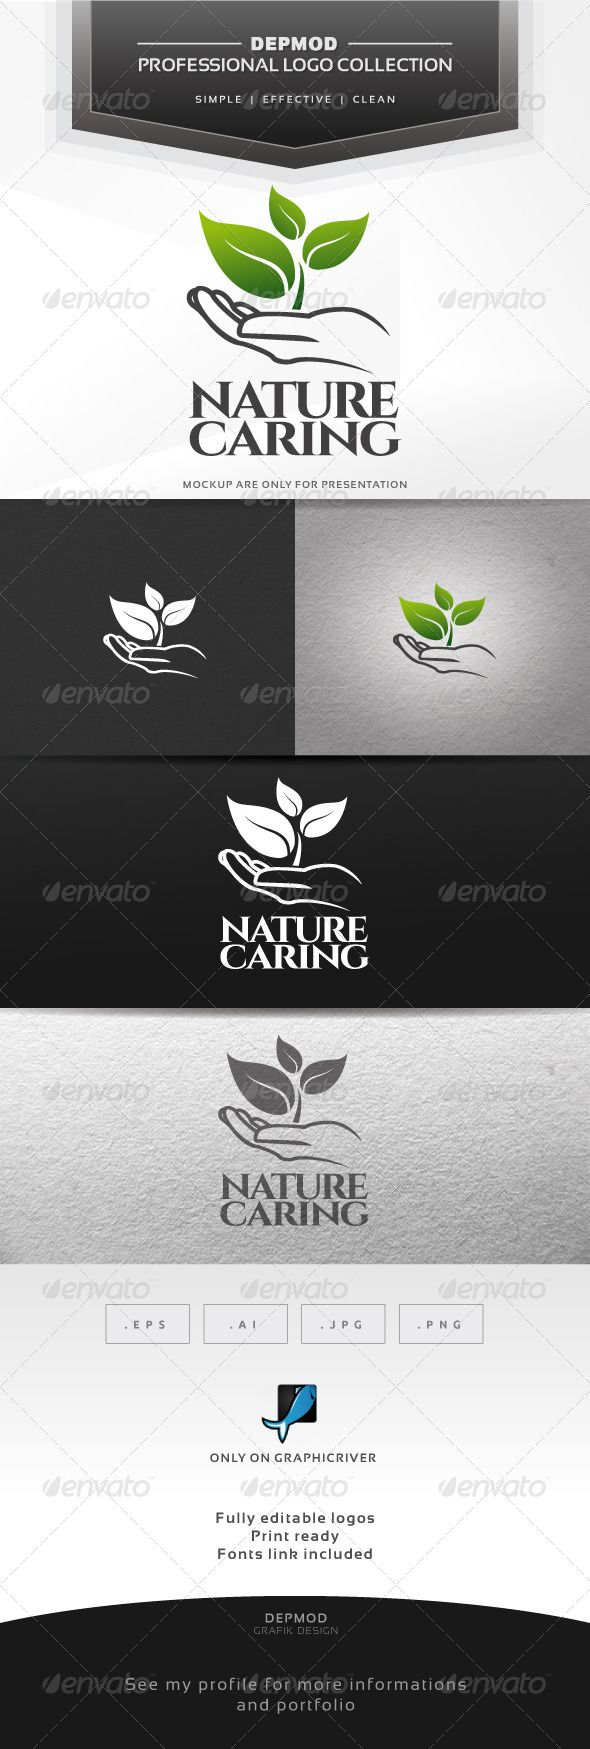 Nature Caring - Logo Design Template Vector #logotype Download it here: http://graphicriver.net/item/nature-caring-logo/6870498?s_rank=866?ref=nexion